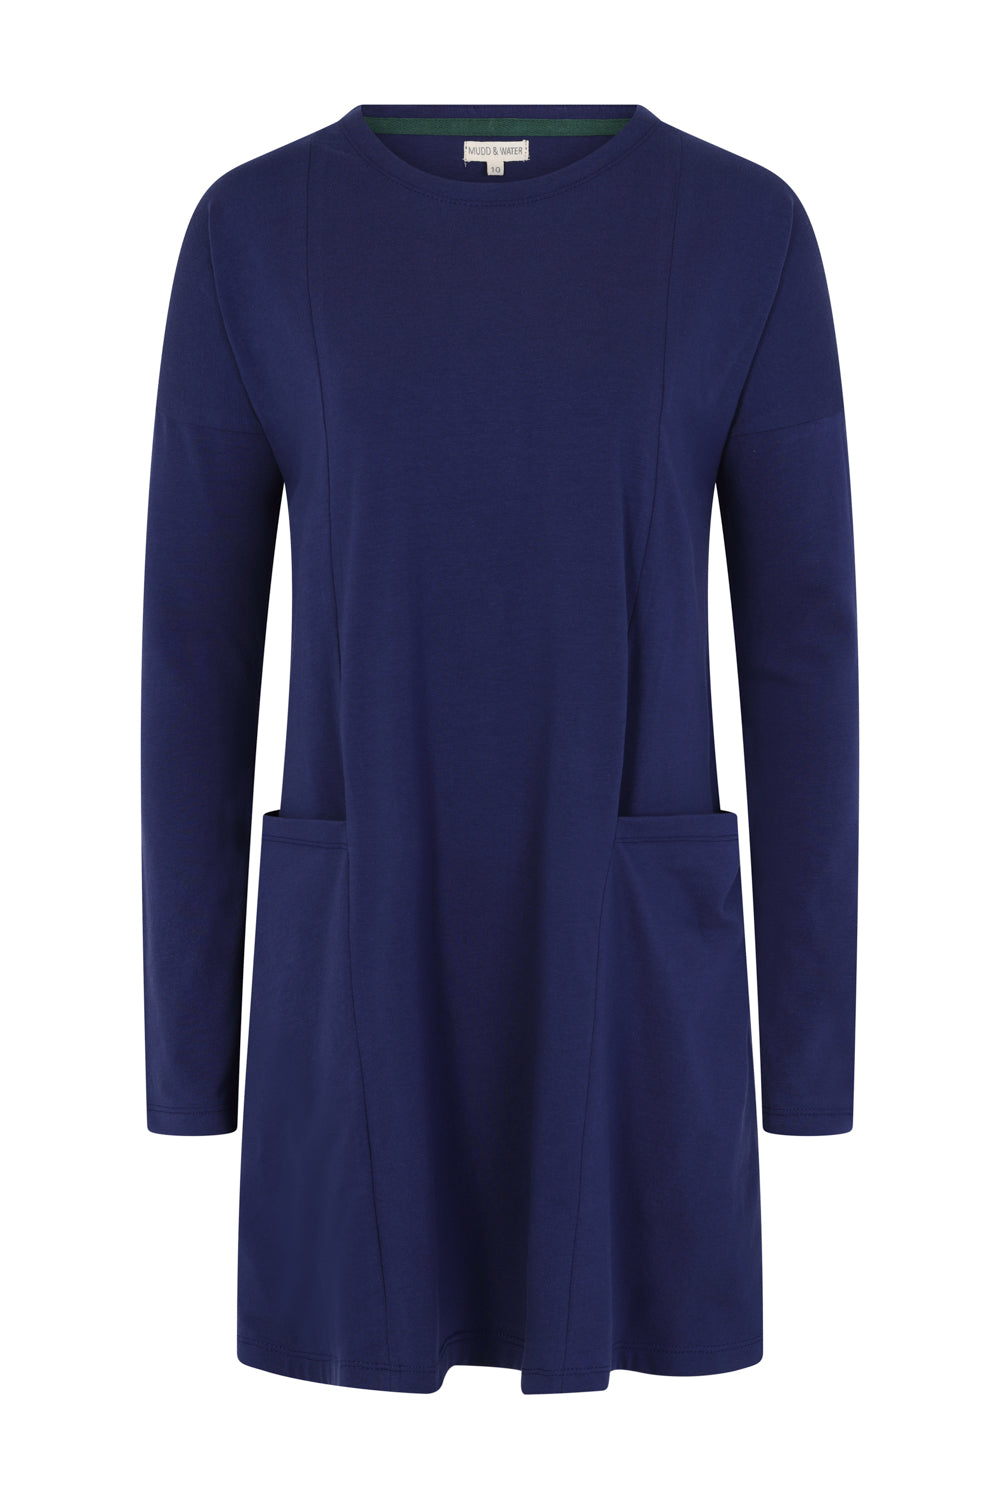 Lazy Days Tunic - Blue Solid